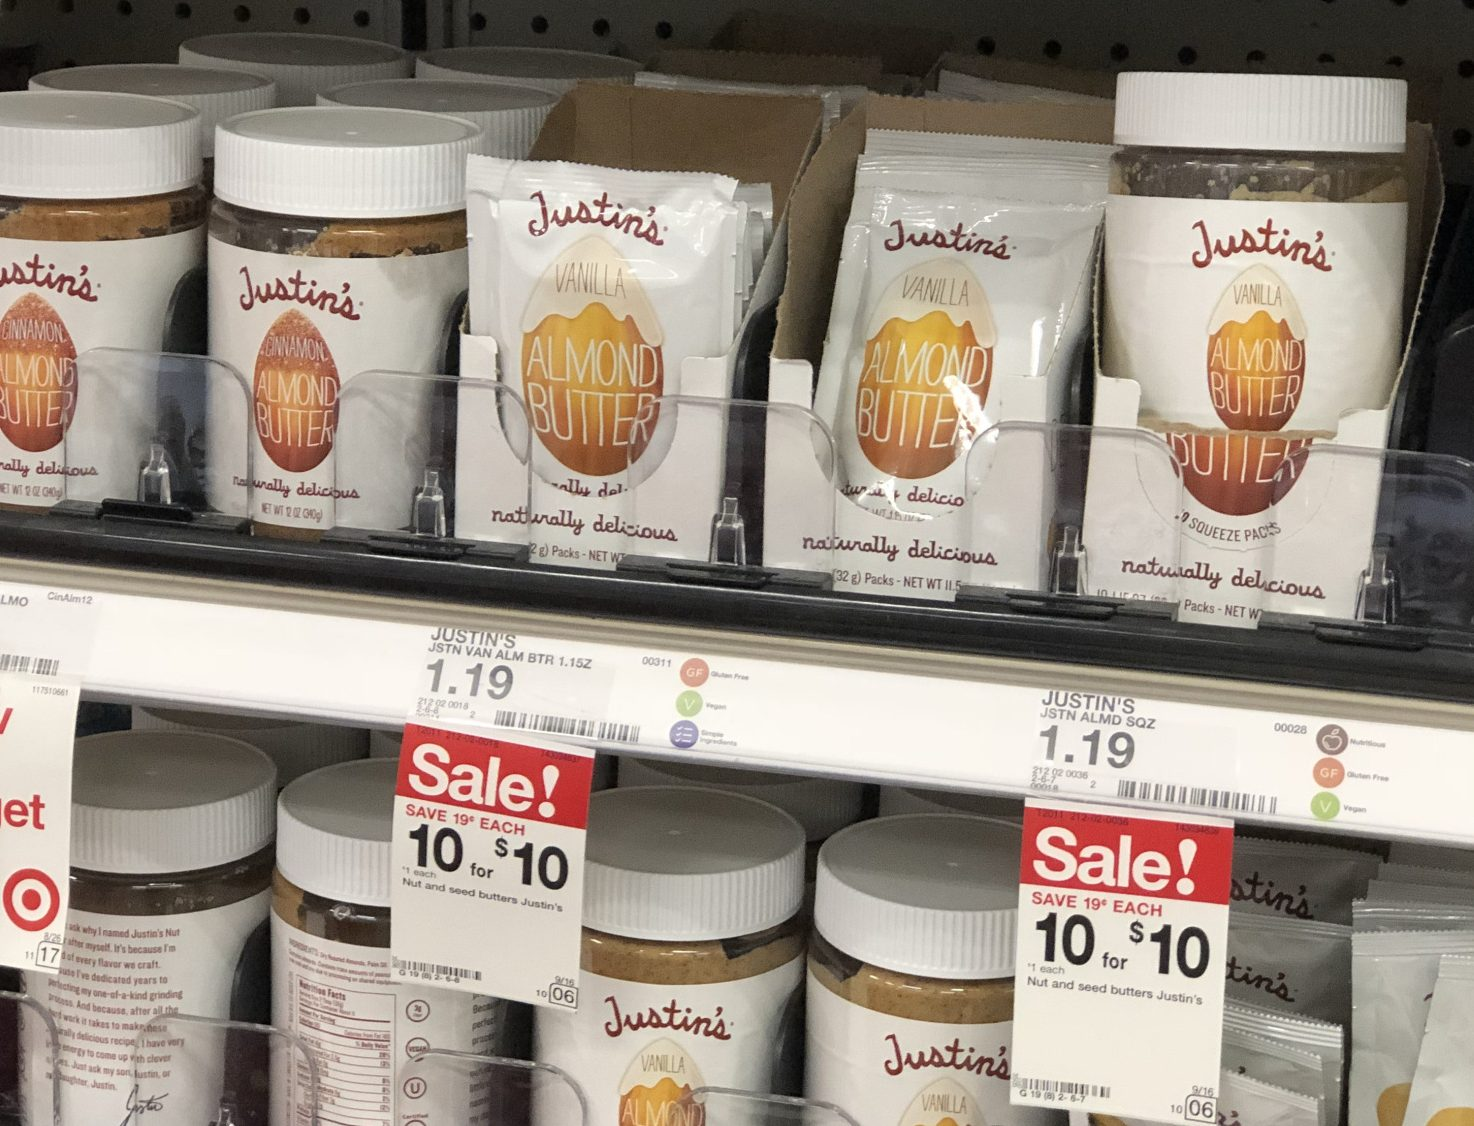 This keto target deal is for these justin's almond butter squeeze packs on a shelf next to jars of nut butter